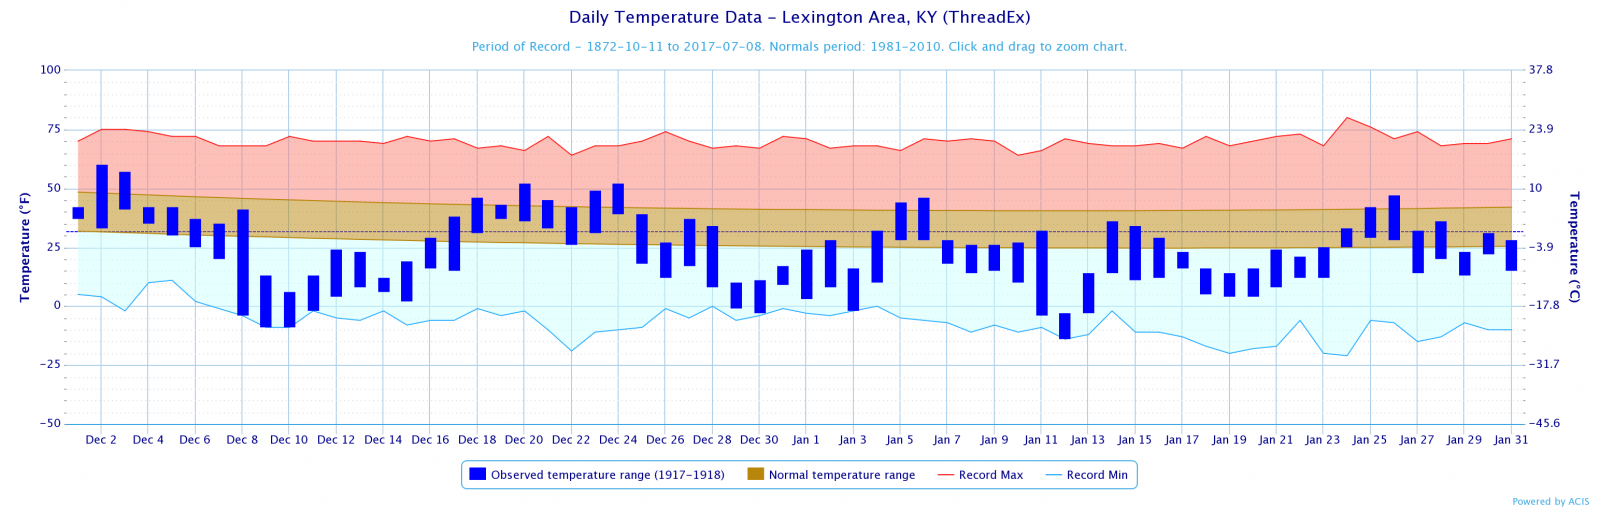 Temperature Plot for Lexington, December 1917-January 1918